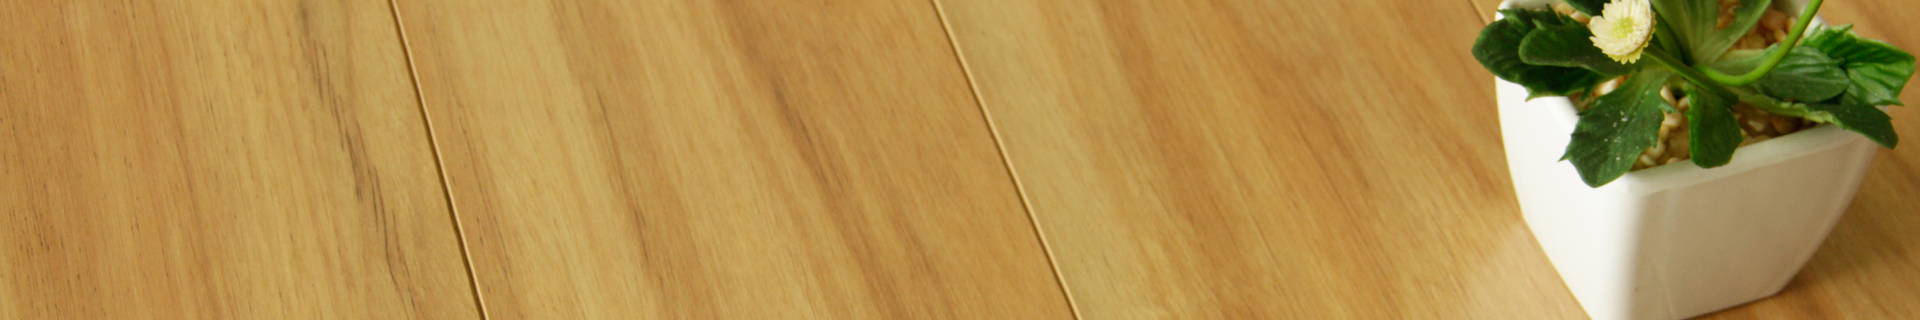 Timber flooring with plant.